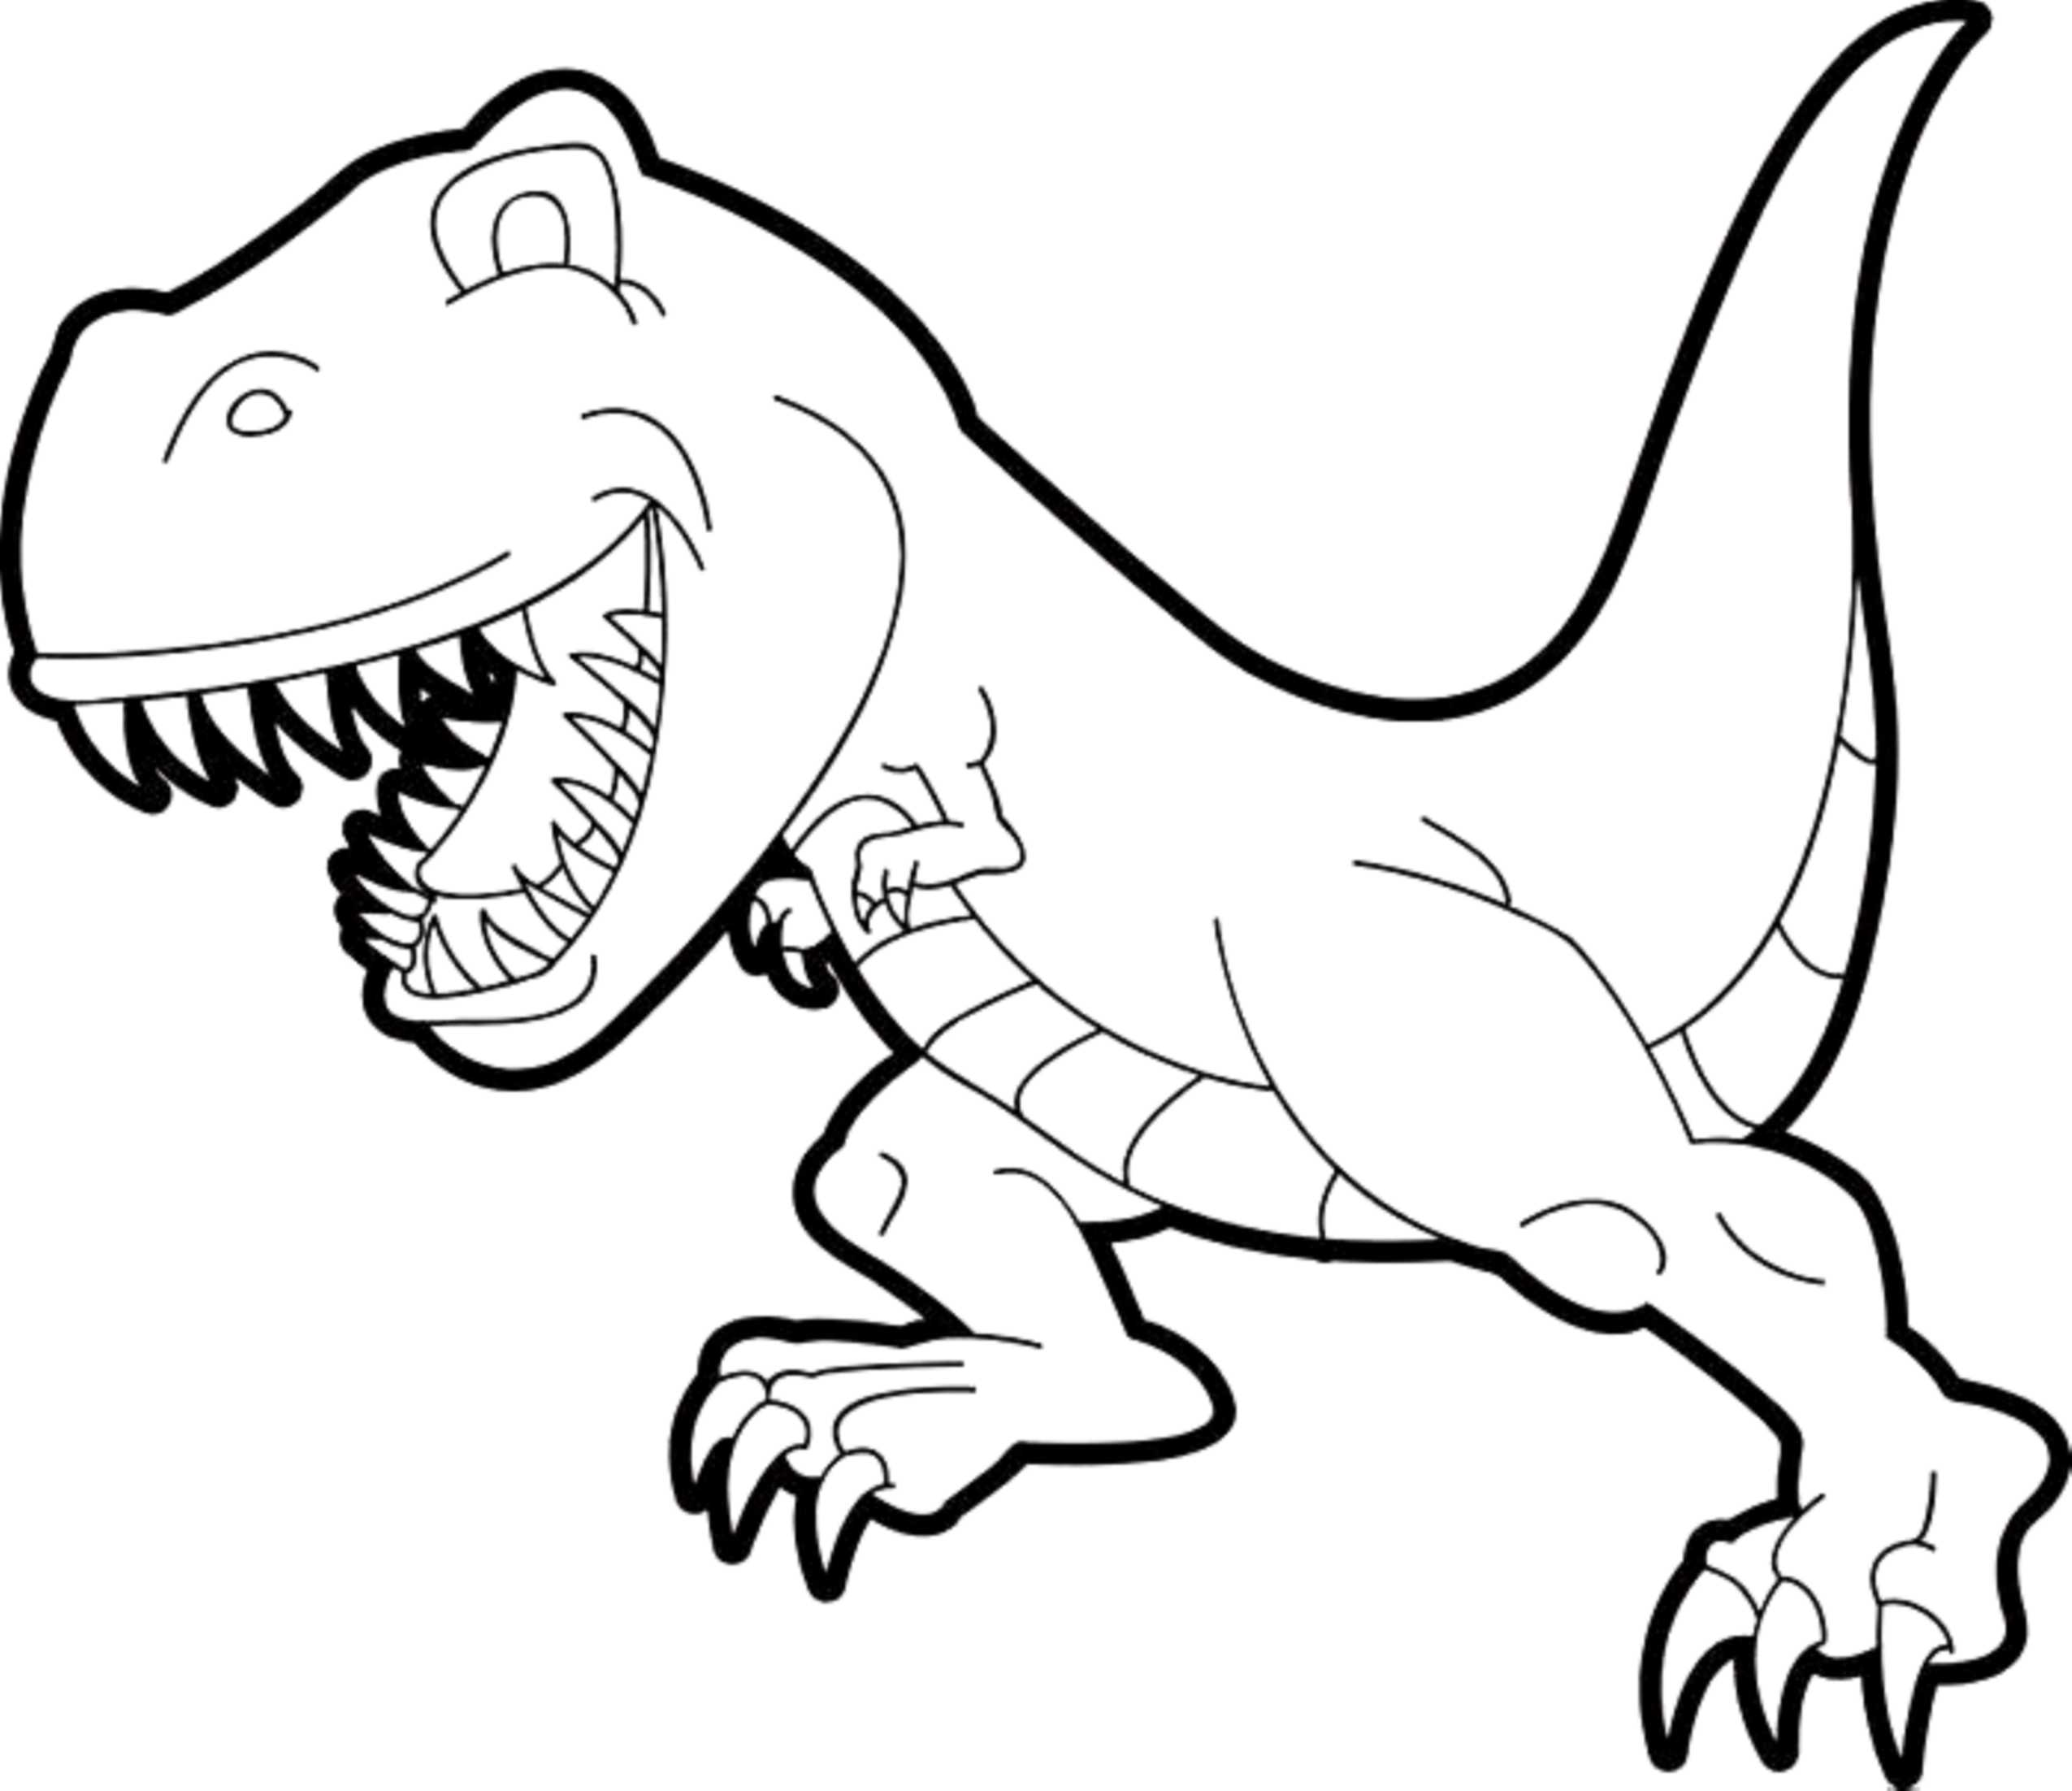 Cute Tyrannosaurus Rex Coloring Pages - Printable Kids Colouring Pages